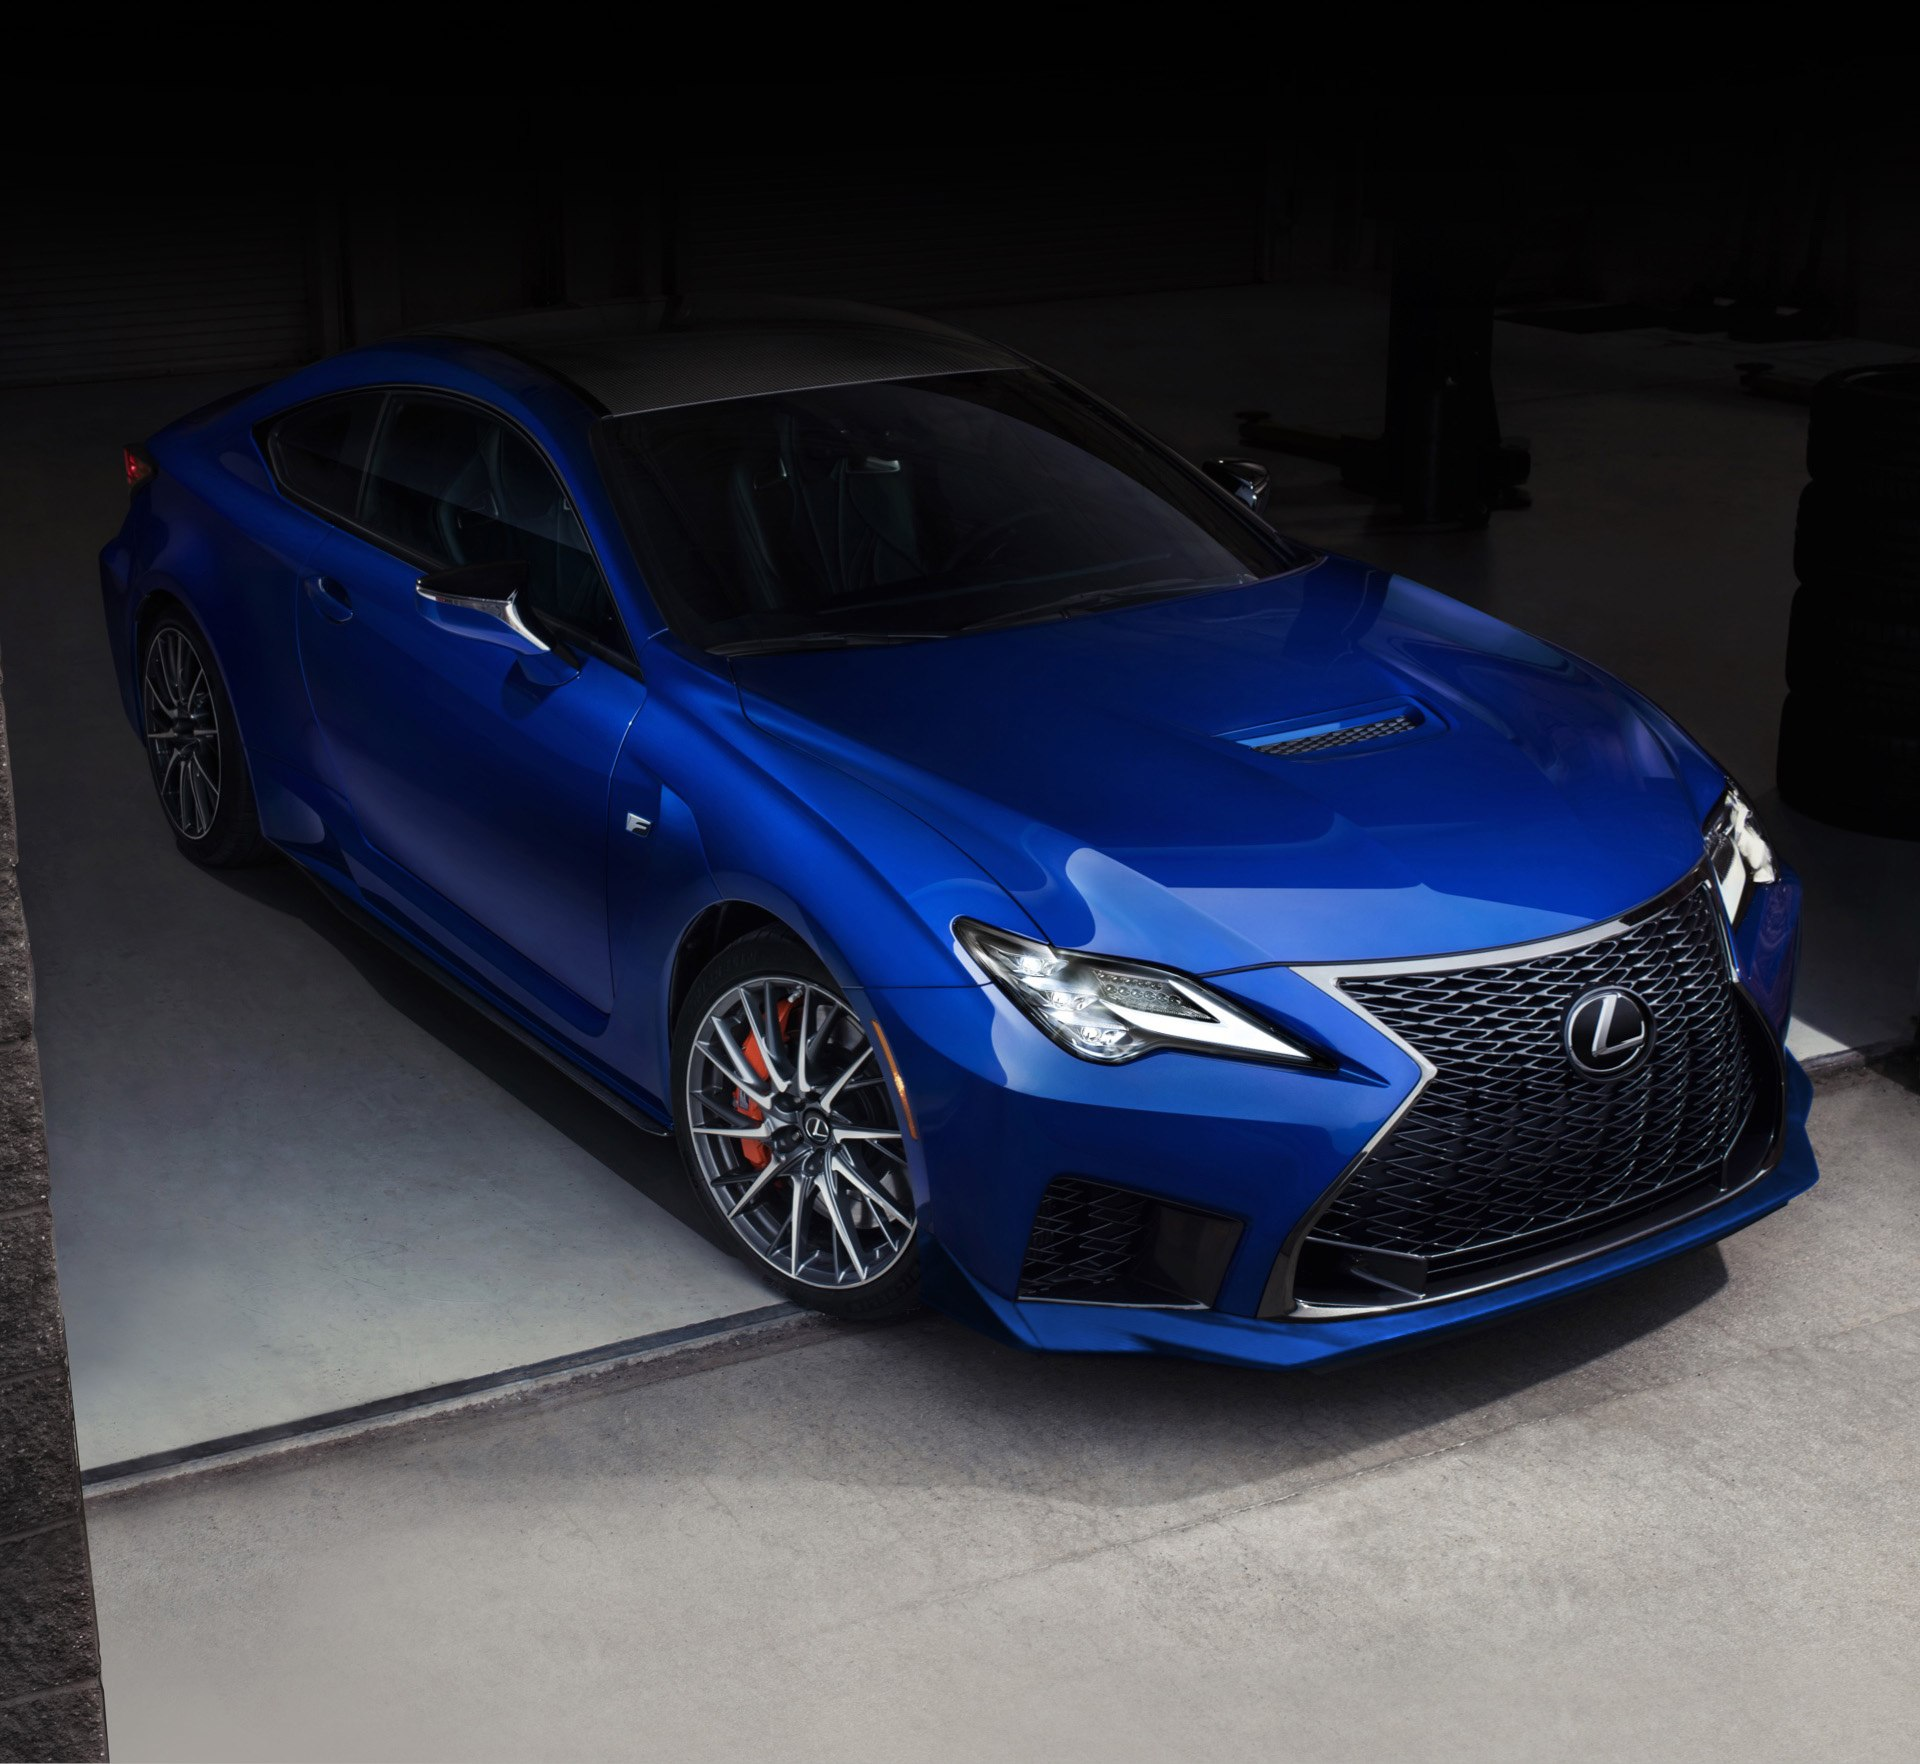 lexus-safety-2020-rcf-blue-mica-2.0-x